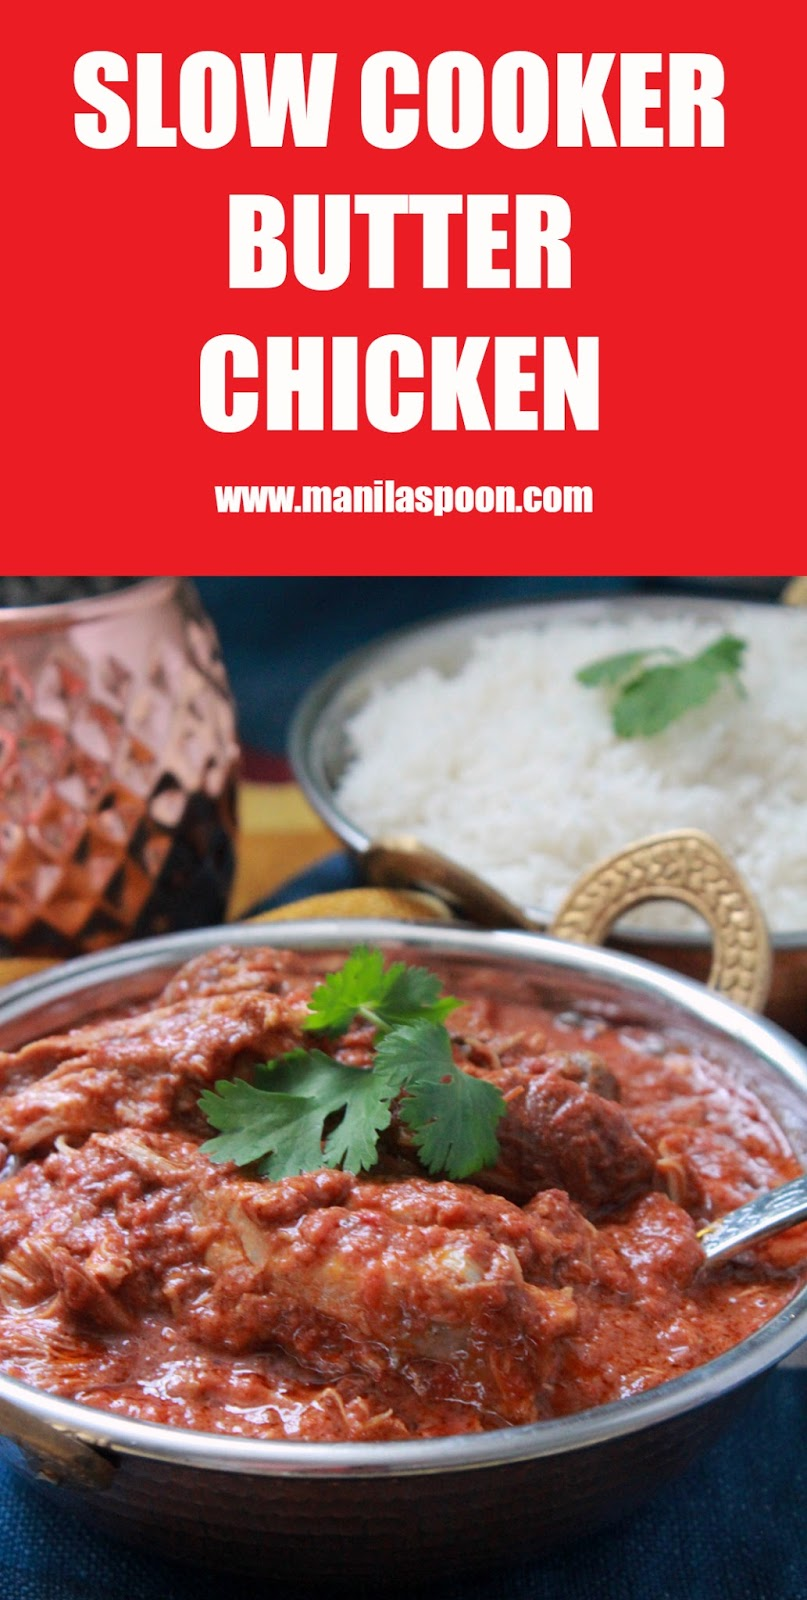 The combination of spices plus a hint of citrus goodness make this Butter Chicken totally delicious! Easy, simple, tried and tested recipe made in your slow cooker!